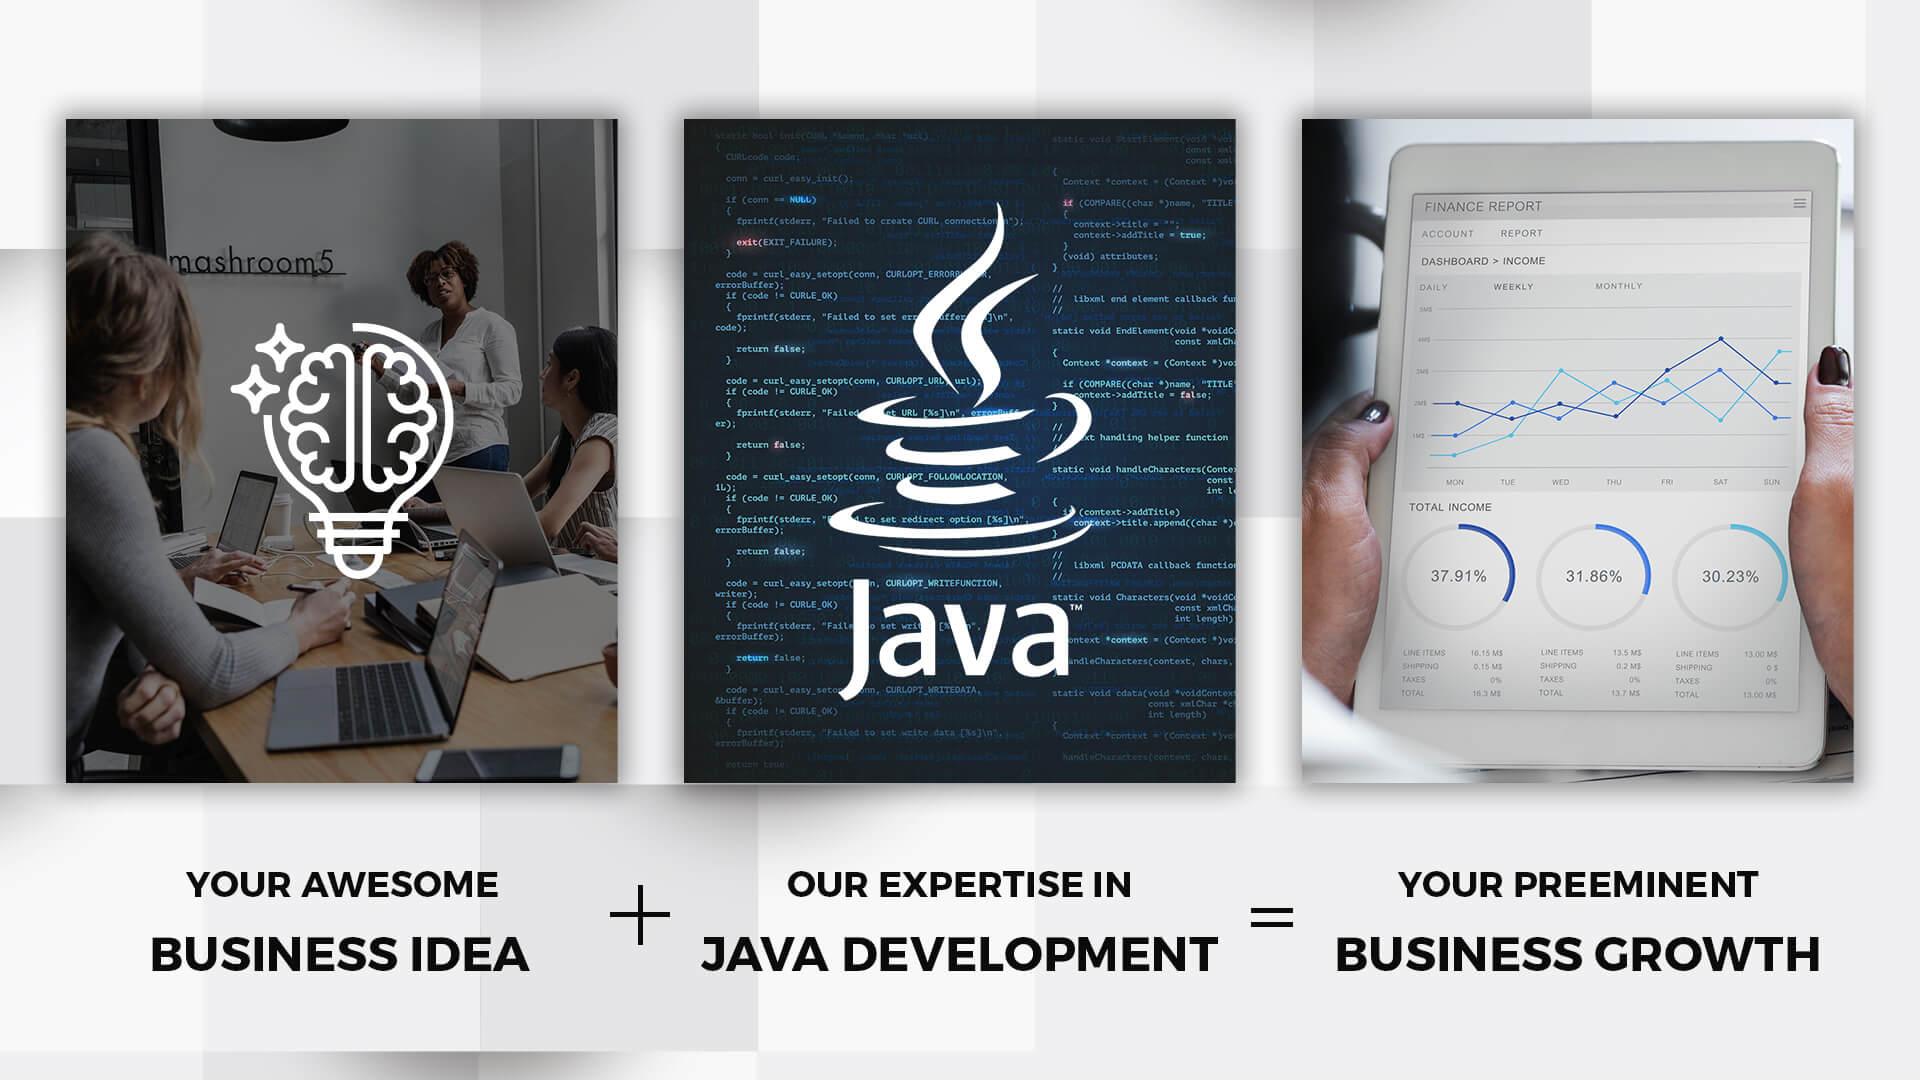 Best Java Software Development Company | TRooTech